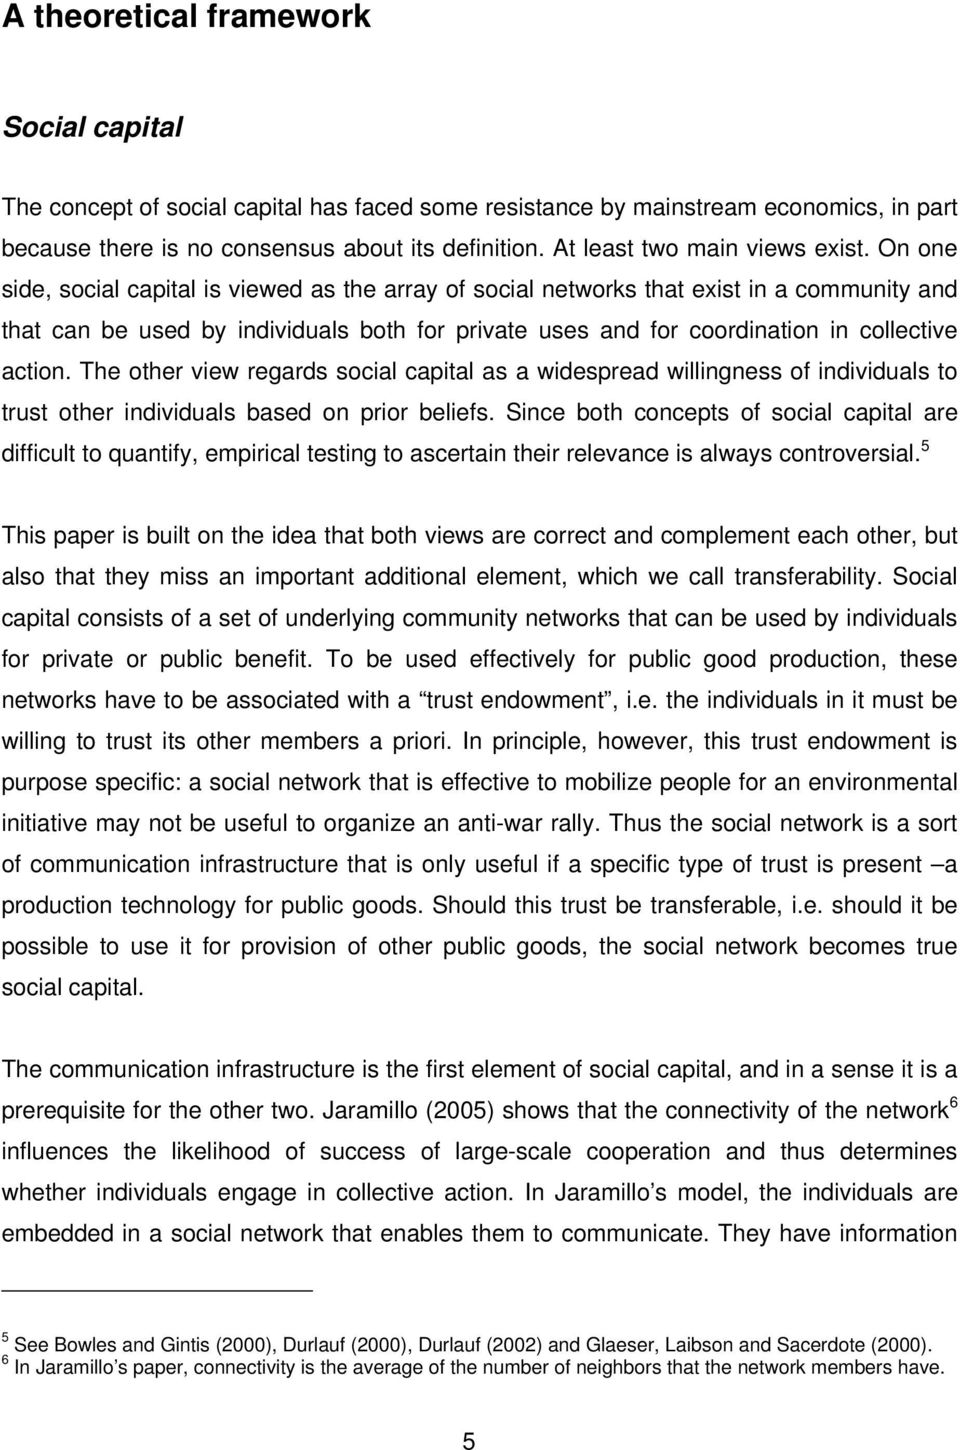 On one side, social capital is viewed as the array of social networks that exist in a community and that can be used by individuals both for private uses and for coordination in collective action.